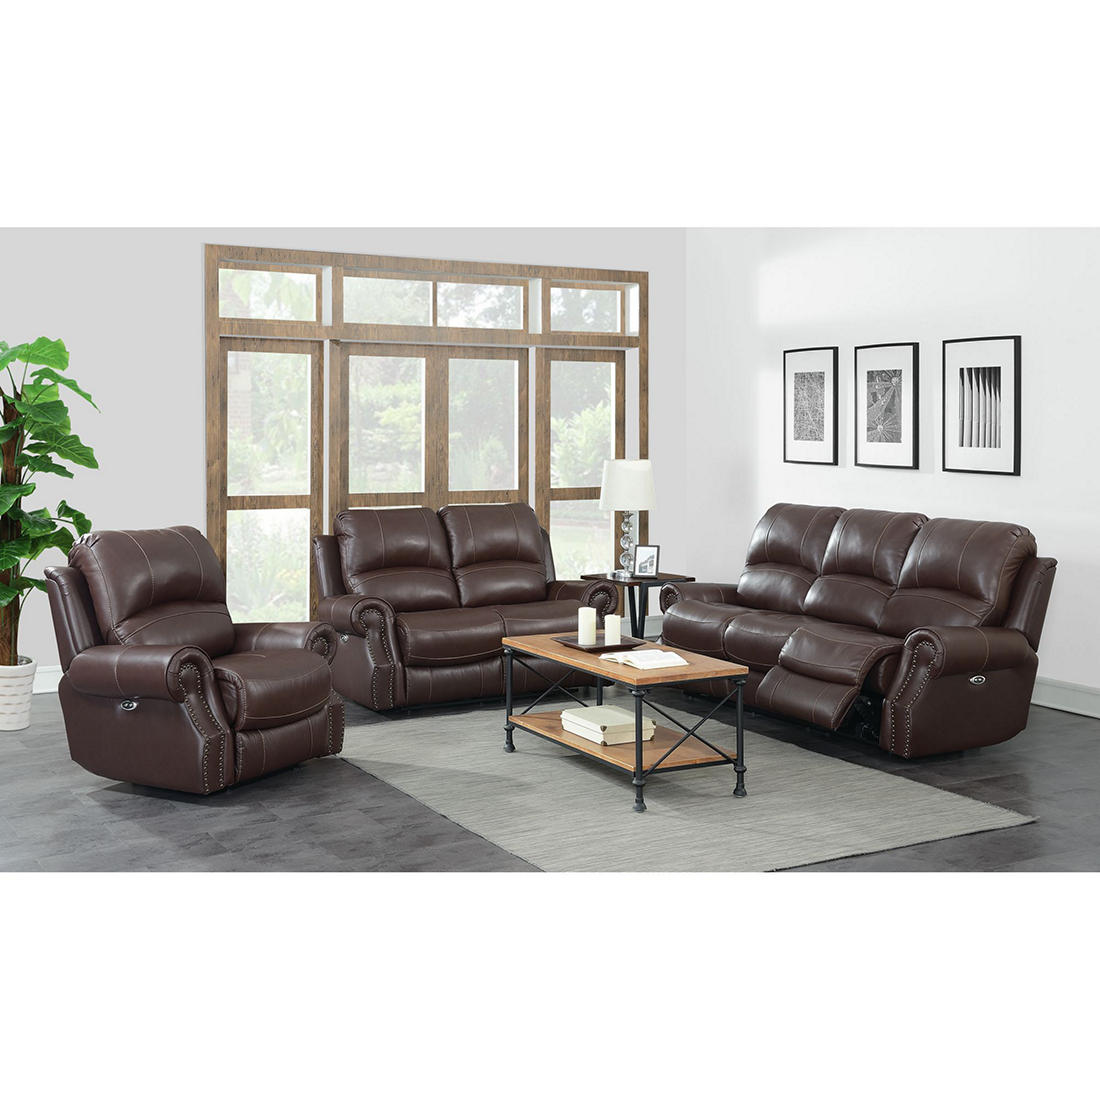 Emerson 3-Pc. Power Motion Reclining Leather Living Room Set with FREE  White Glove Delivery